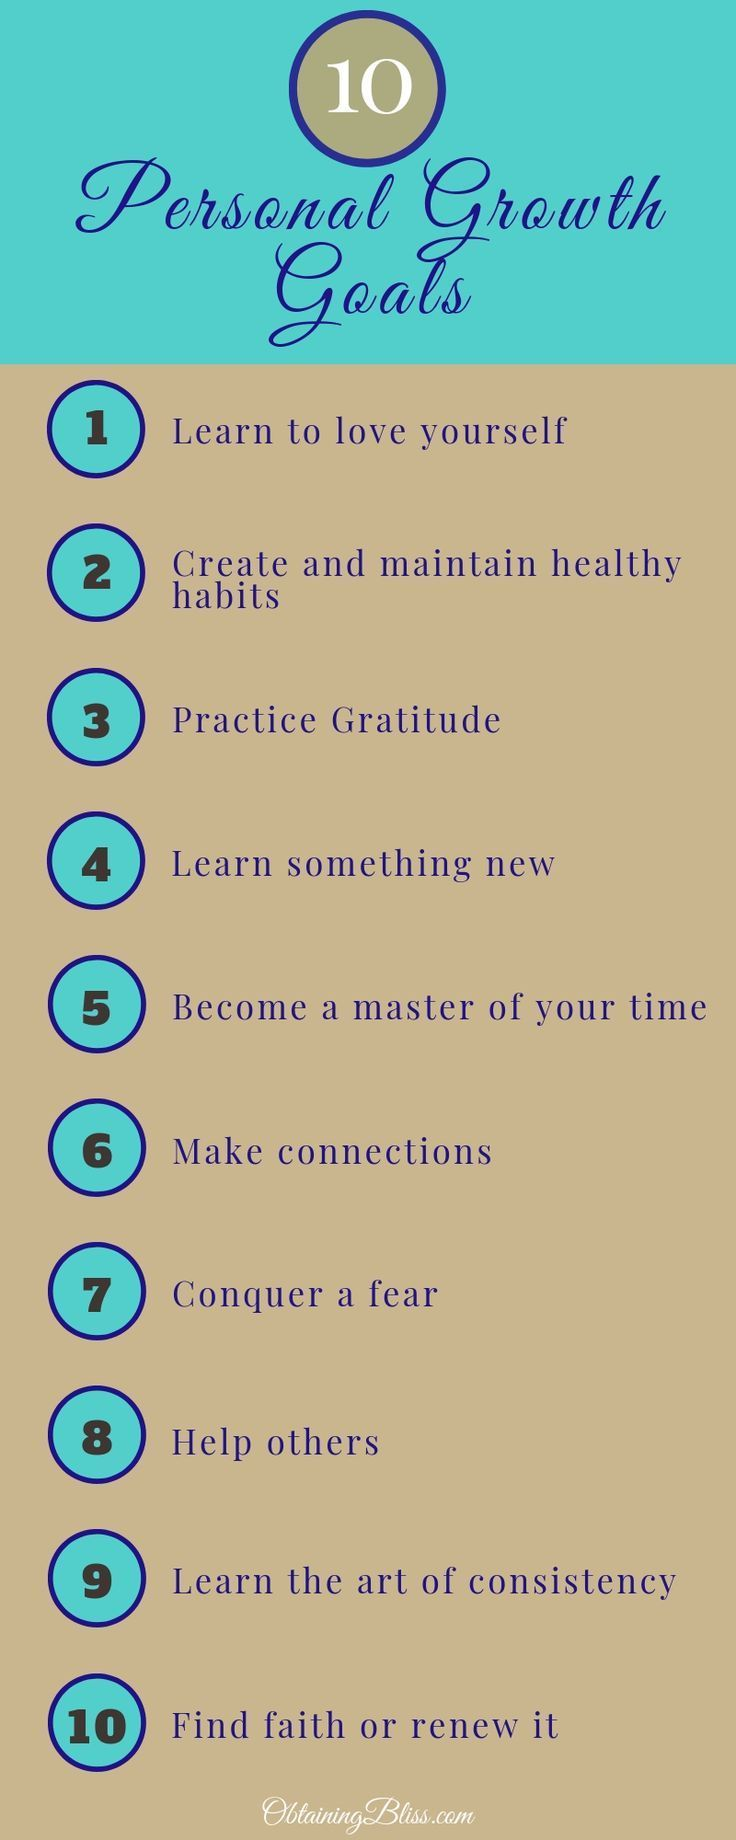 goals personal growth self development woman every should quotes relationship learning care yourself